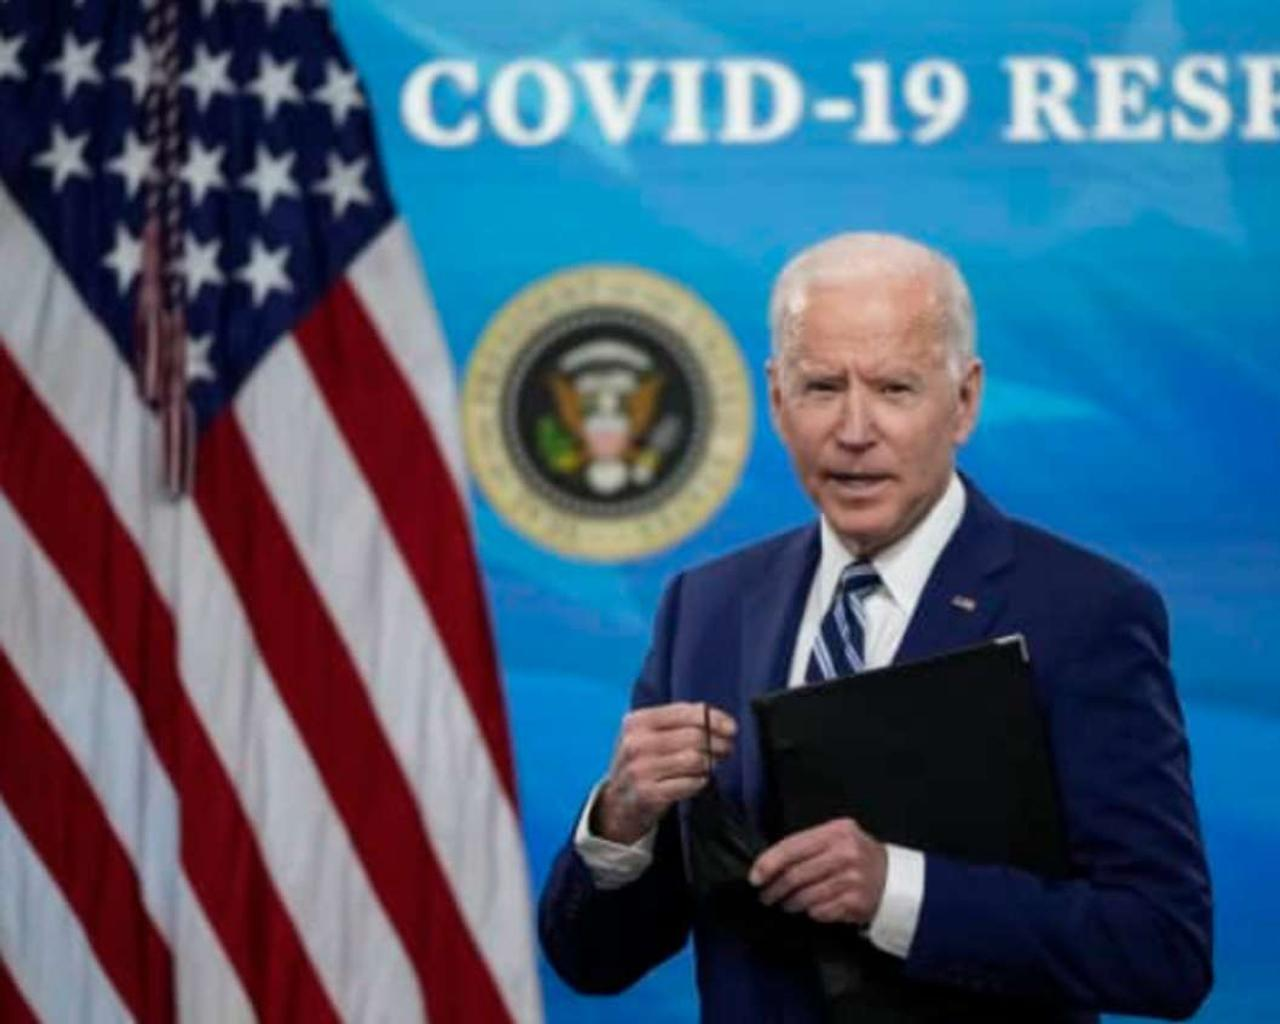 The Government of Joe Biden will invest USD 1.7 billion to detect new variants of the coronavirus in the US.